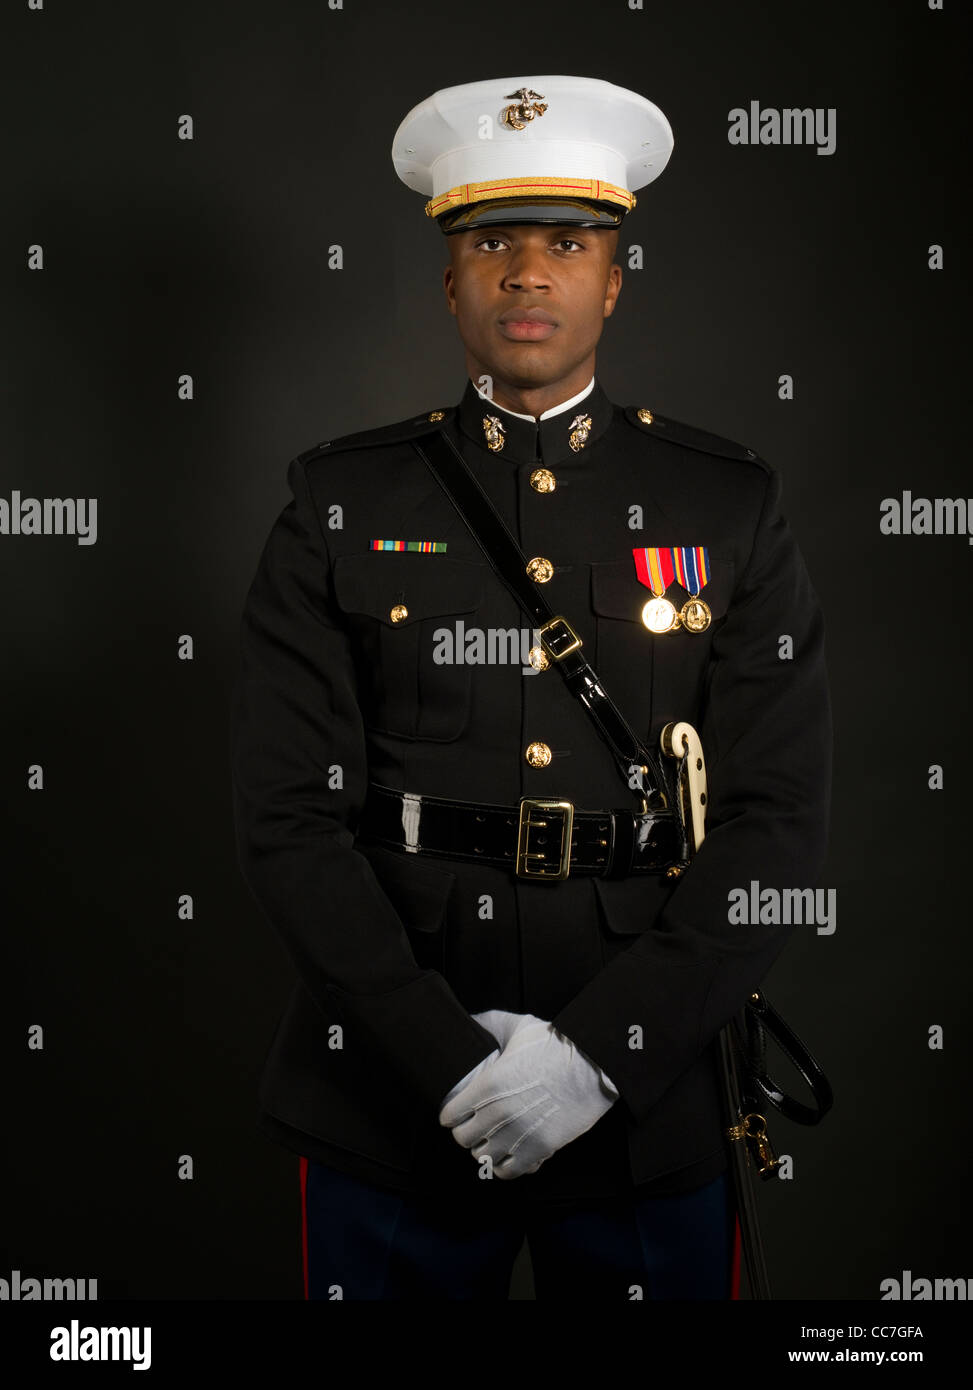 Marine Corps Dress Blues Uniform 19